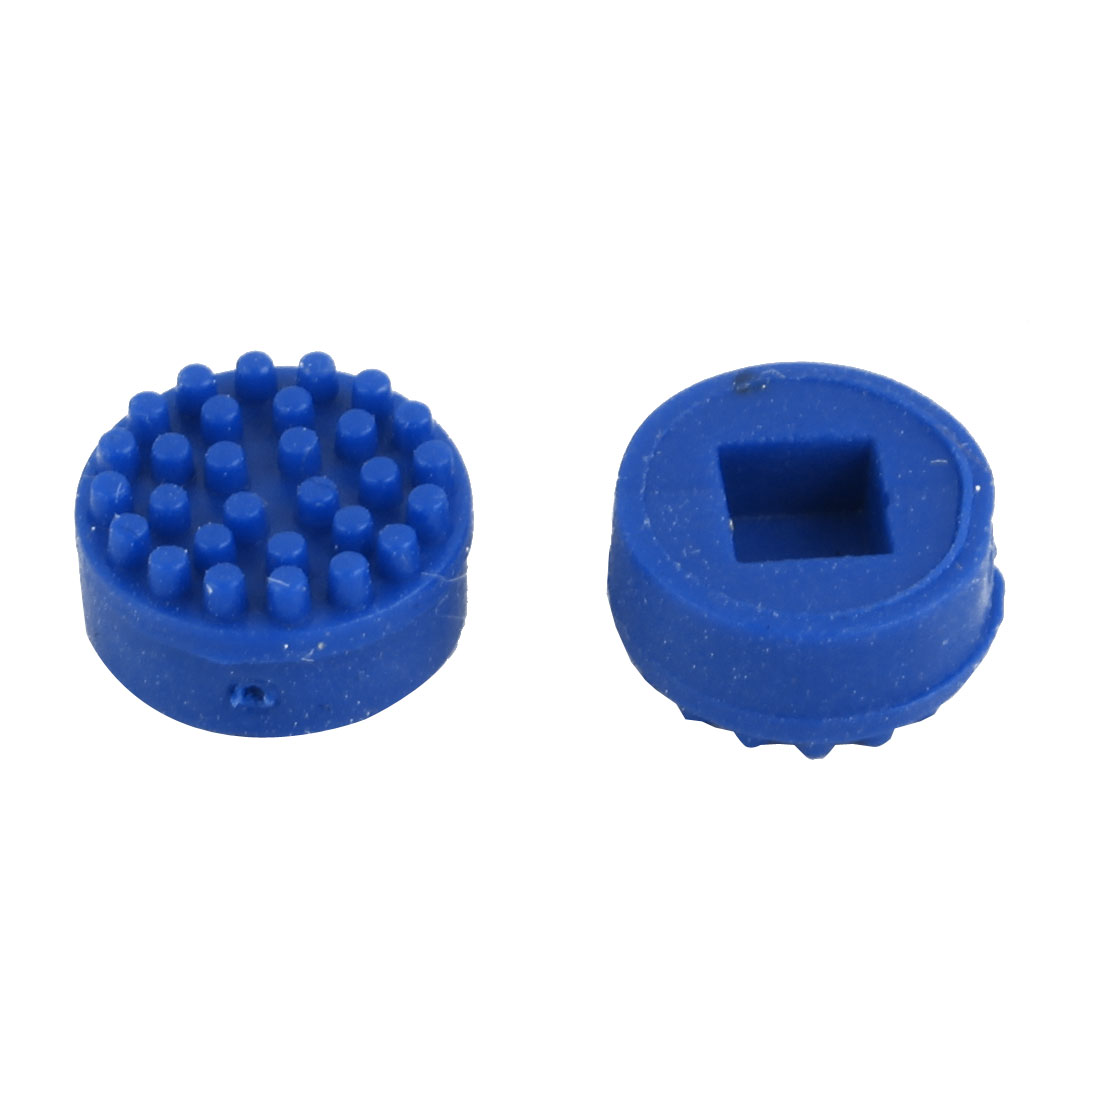 7.0mm OD 4.0mm Height Plastic TrackPoint Blue Cap for HP Laptops 2 Pcs